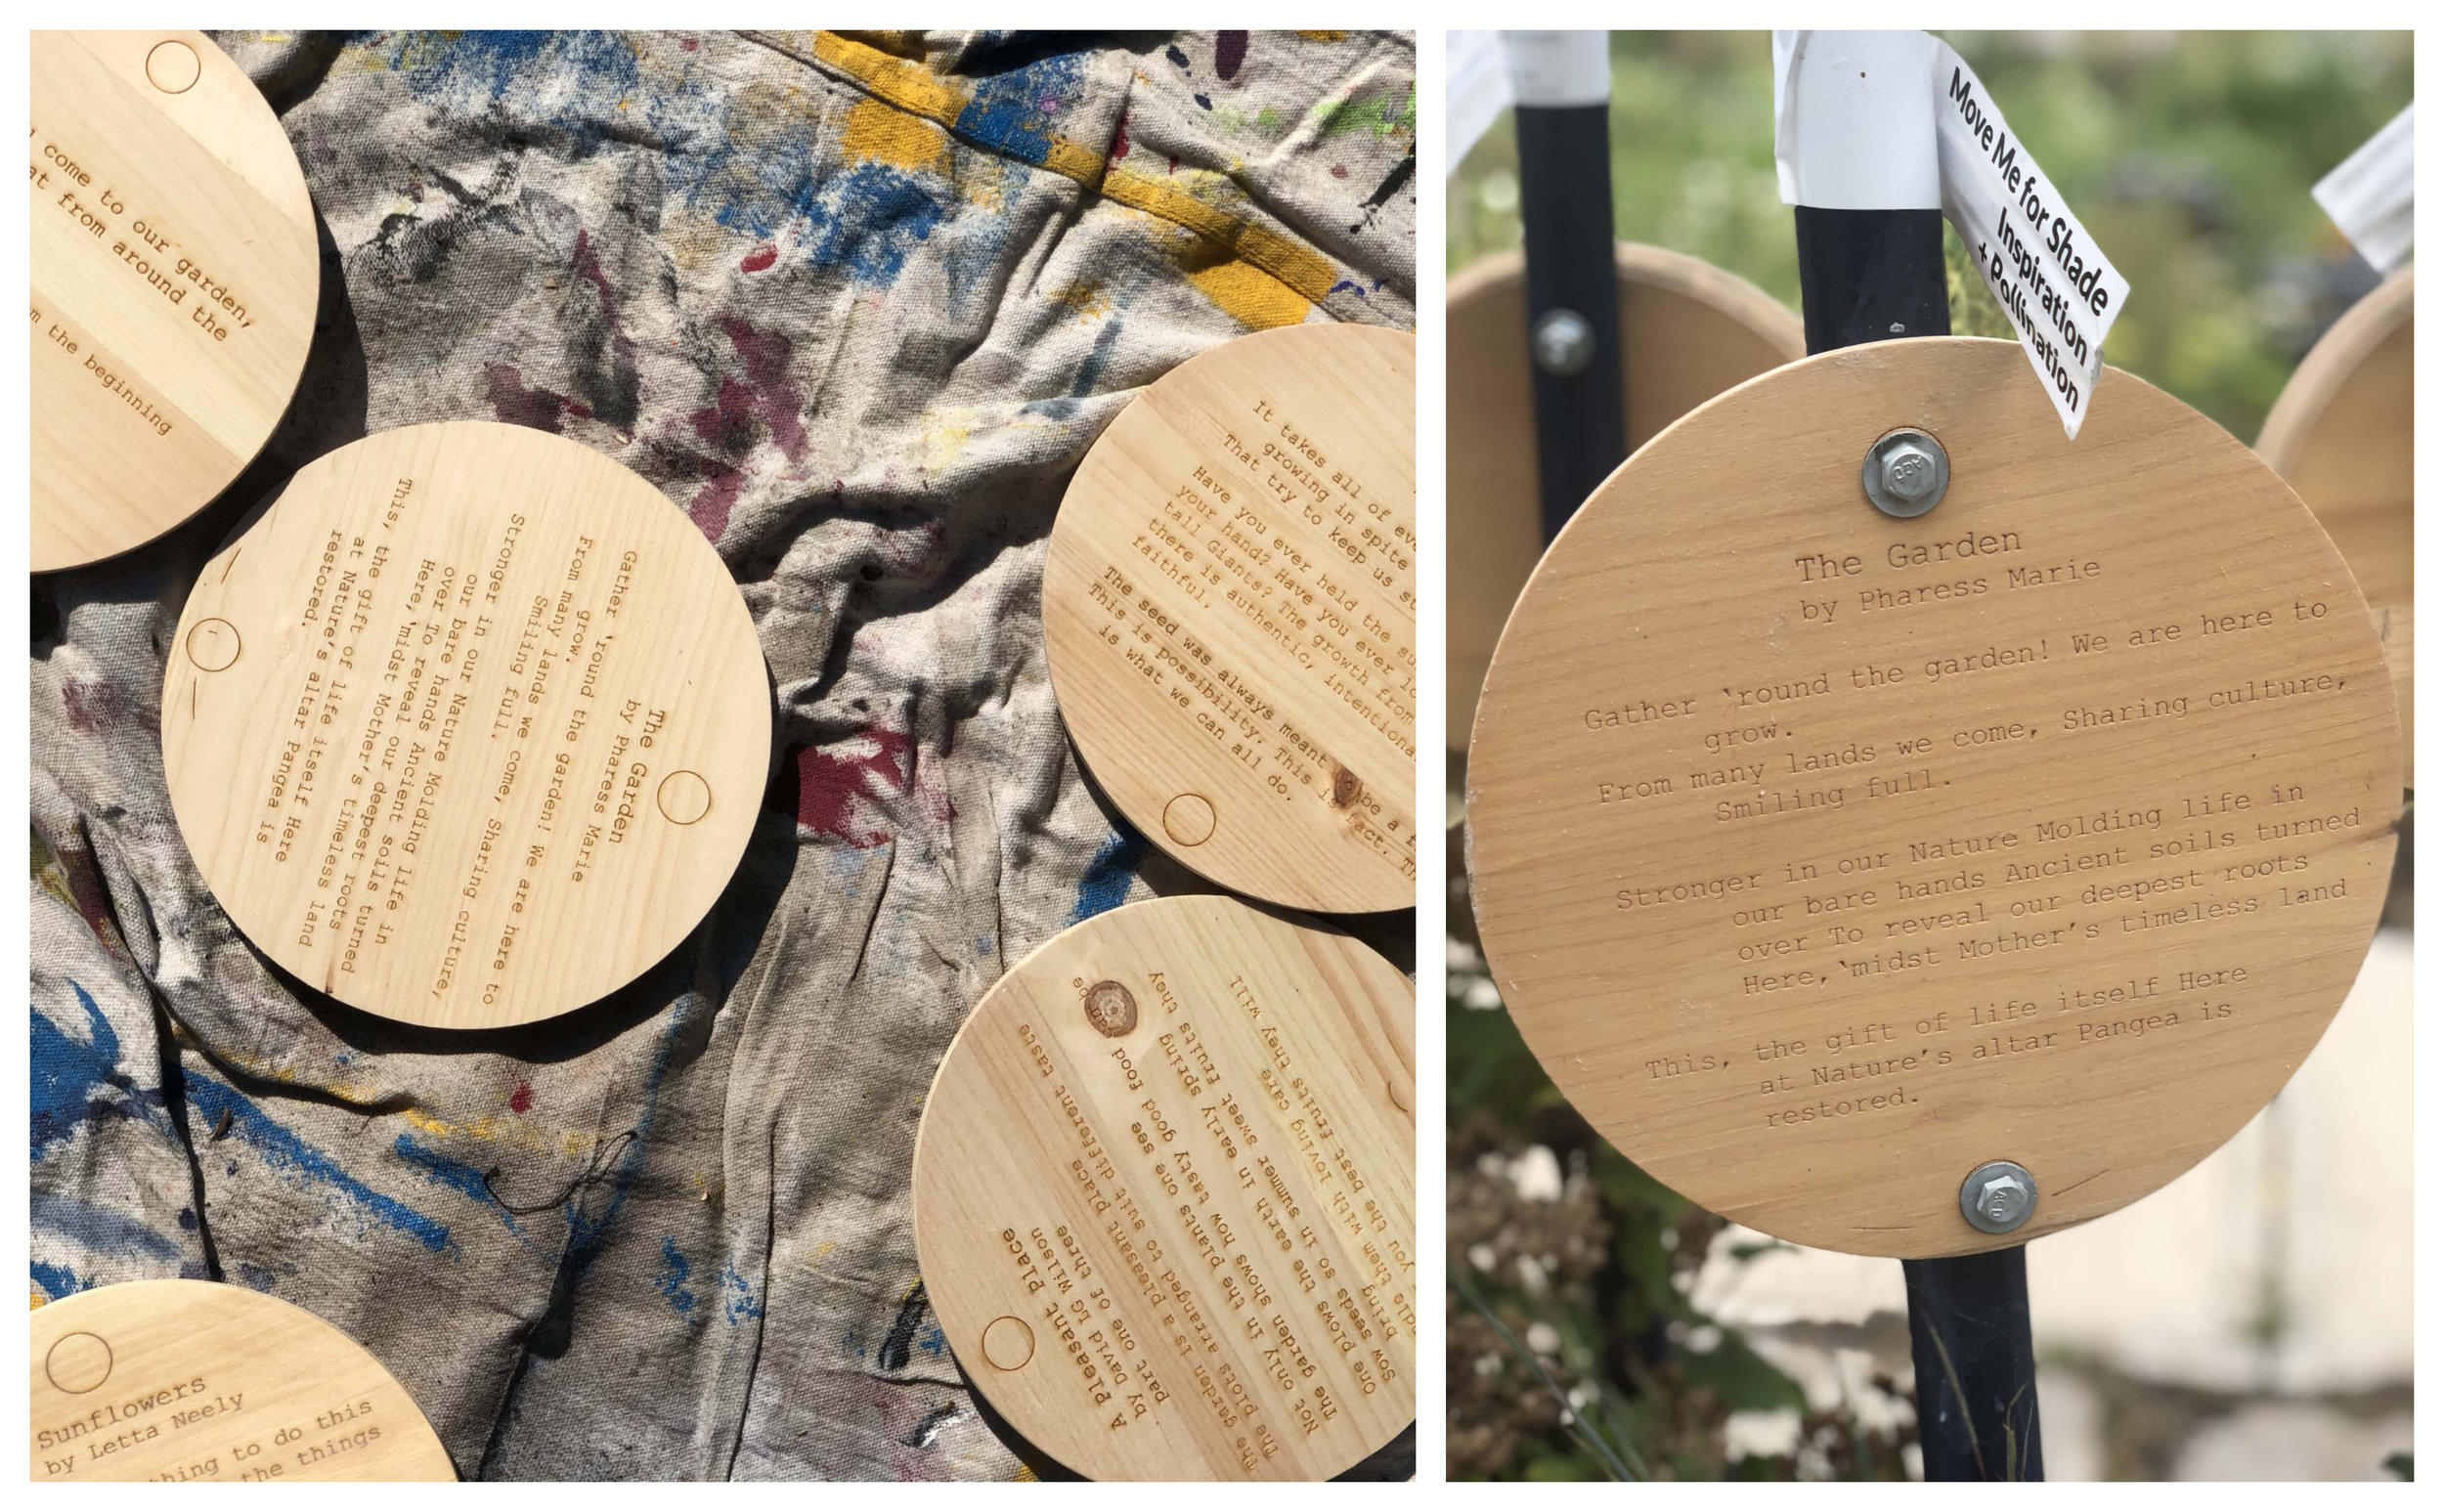 Plaques with the laser-cut poems and garden wisdom quotations.